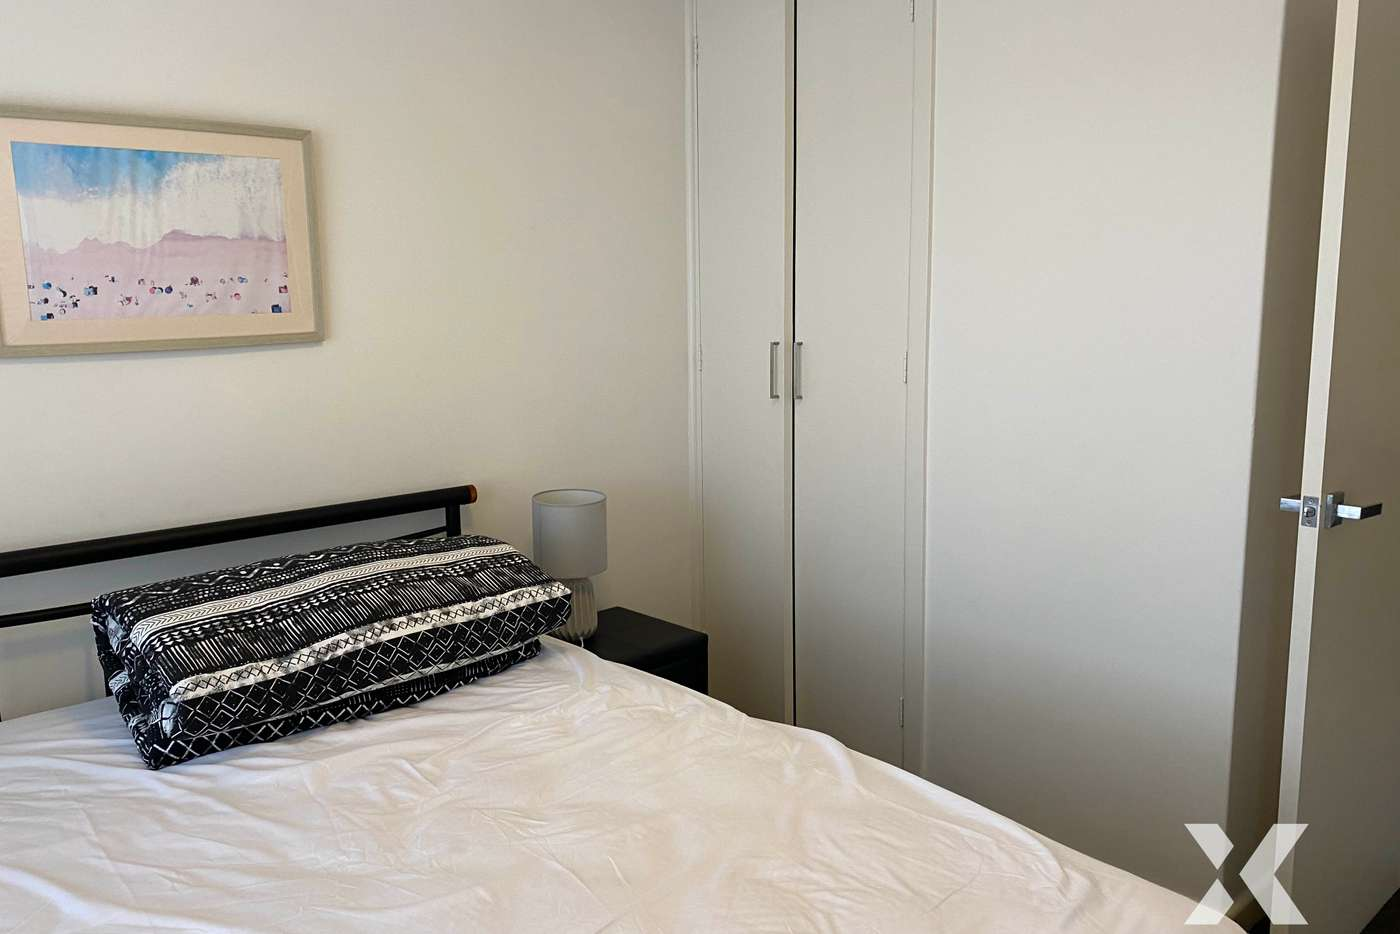 Sixth view of Homely apartment listing, 6/285 Punt Road, Richmond VIC 3121